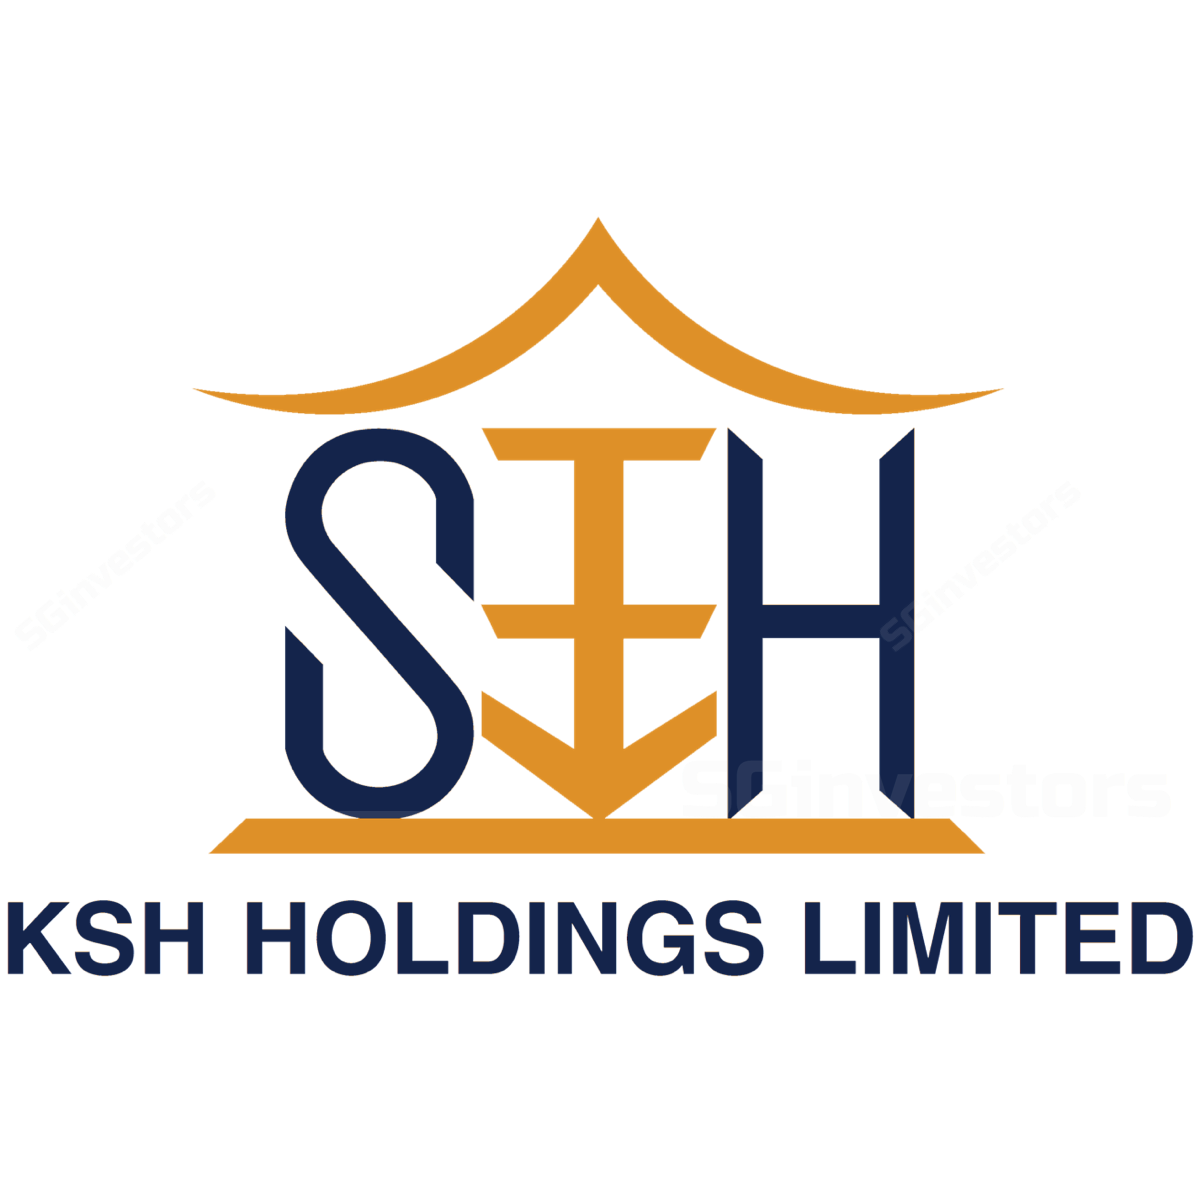 KSH Holdings (KSHH SP) - UOB Kay Hian Research 2018-08-13: 1qfy19 Mixed Results